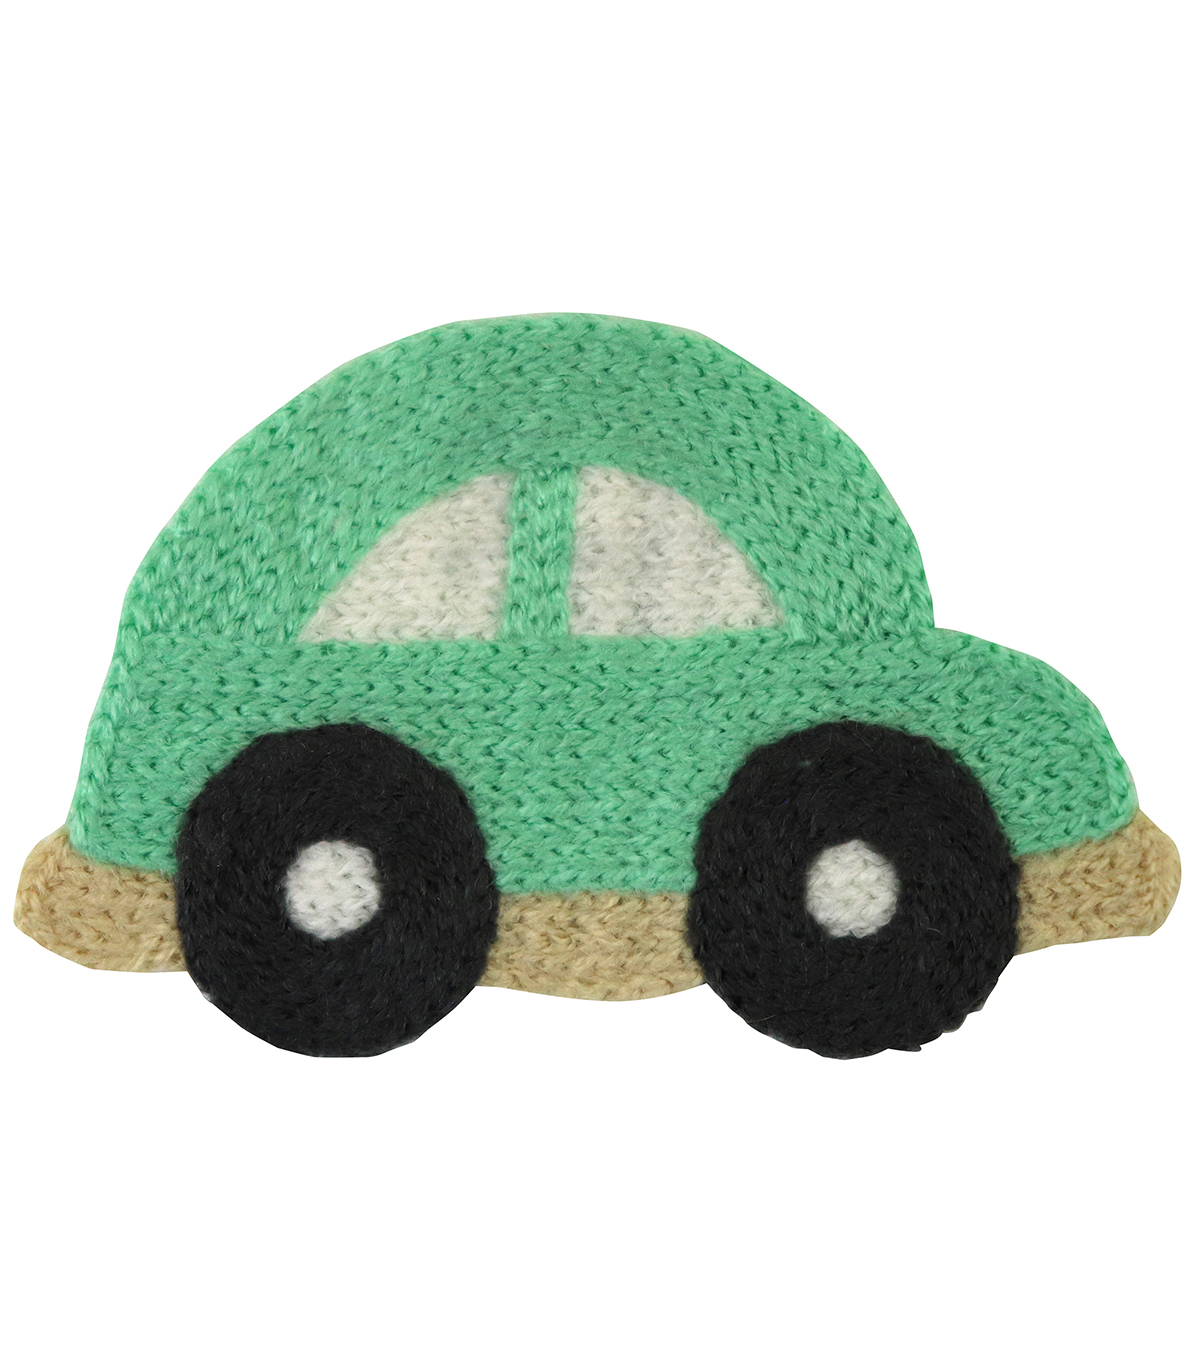 Simplicity Car Baby Sew-on Applique-Light Green